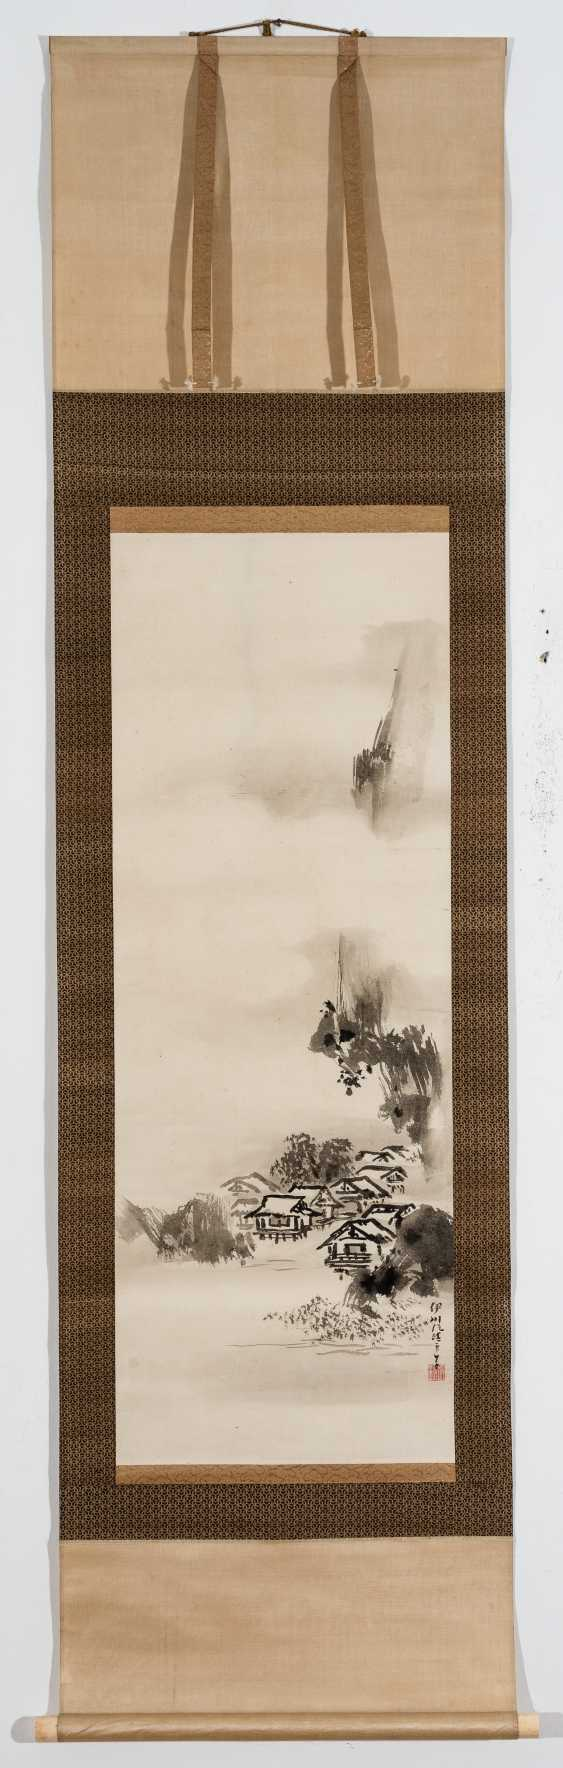 KANO ISENIN NAGANOBU (1775 - 1828): HIGH ROCKY AREA - photo 5